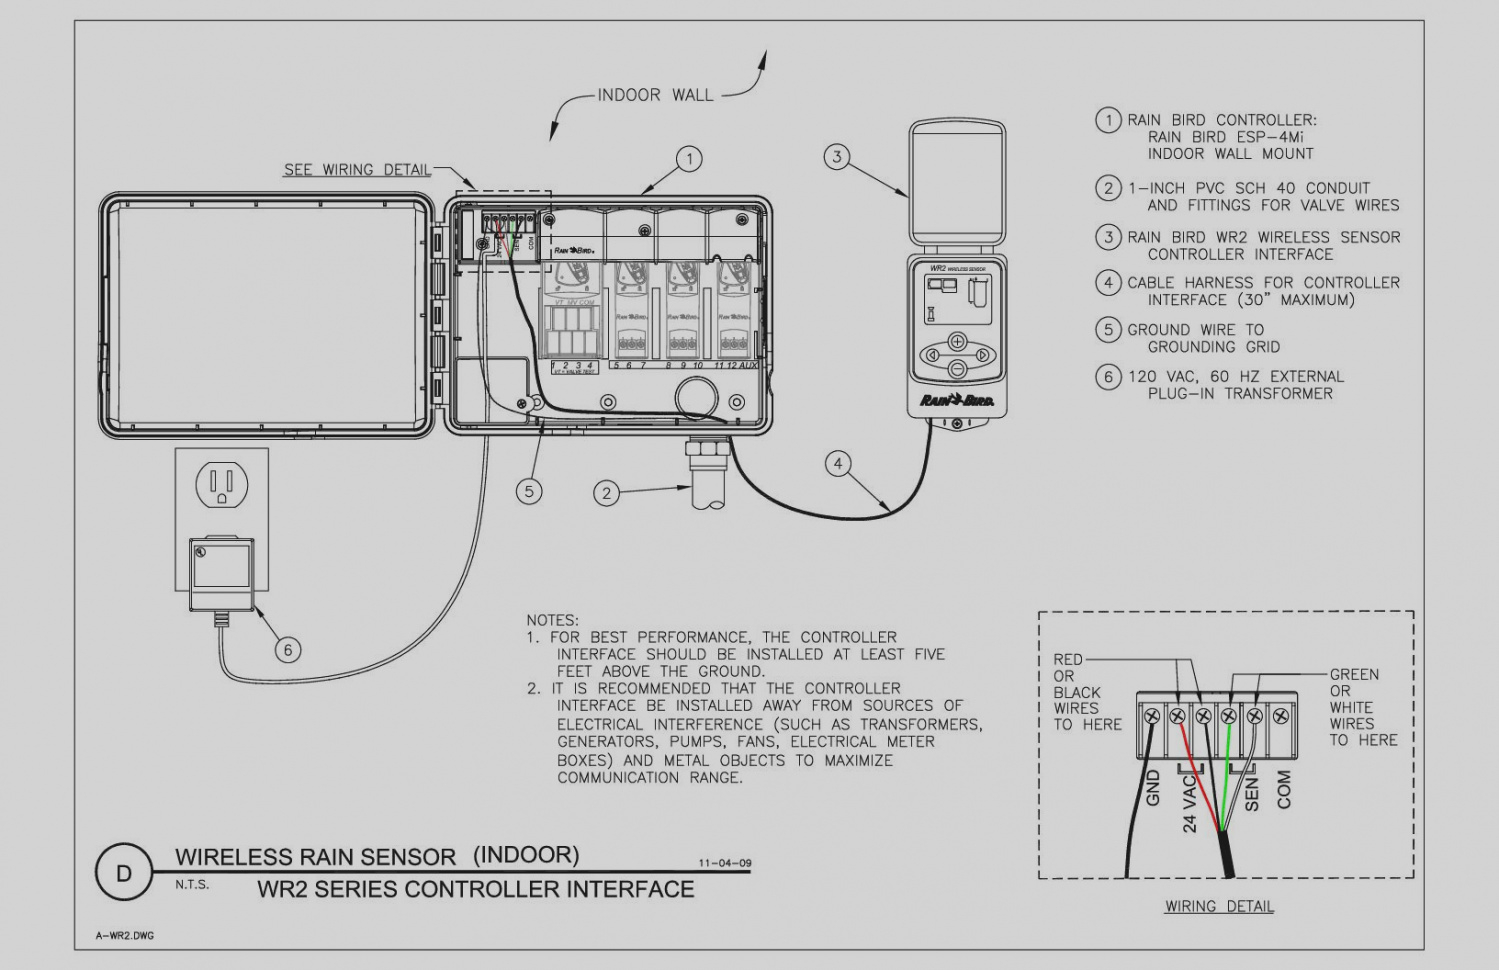 rain bird esp 4tm wiring diagram complete wiring diagrams \u2022 esp kh-202 wiring-diagram rain bird esp 4tm wiring diagram wire center u2022 rh insurapro co rain bird esp manual